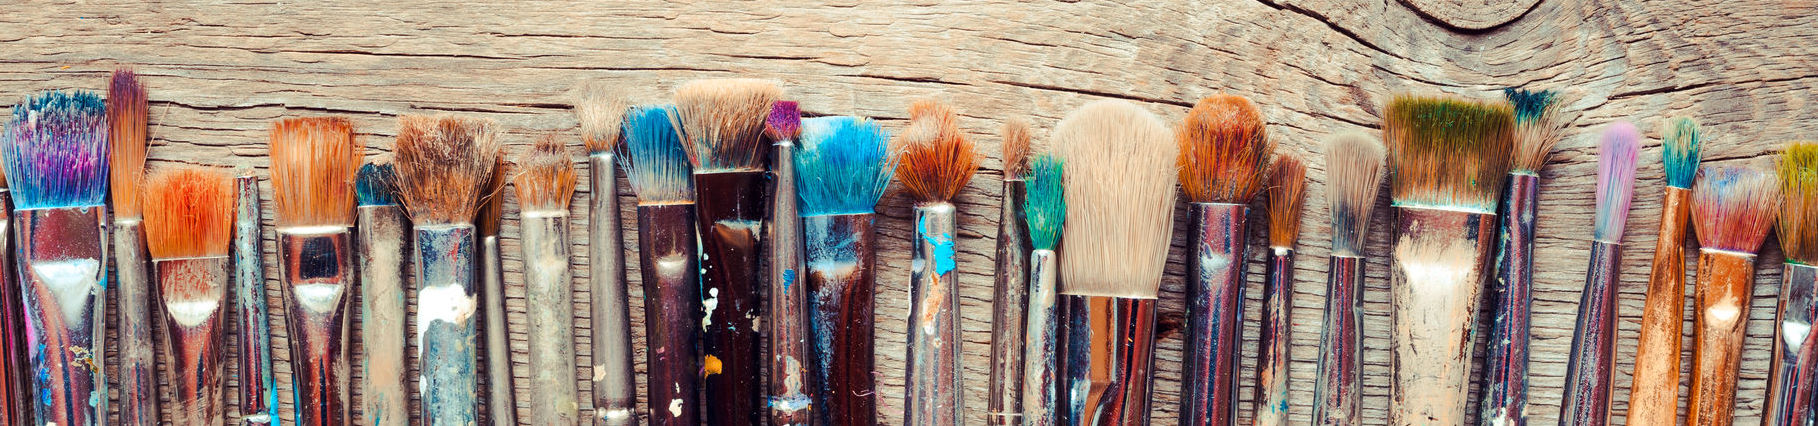 35515339 - row of artist paintbrushes closeup on old wooden rustic background